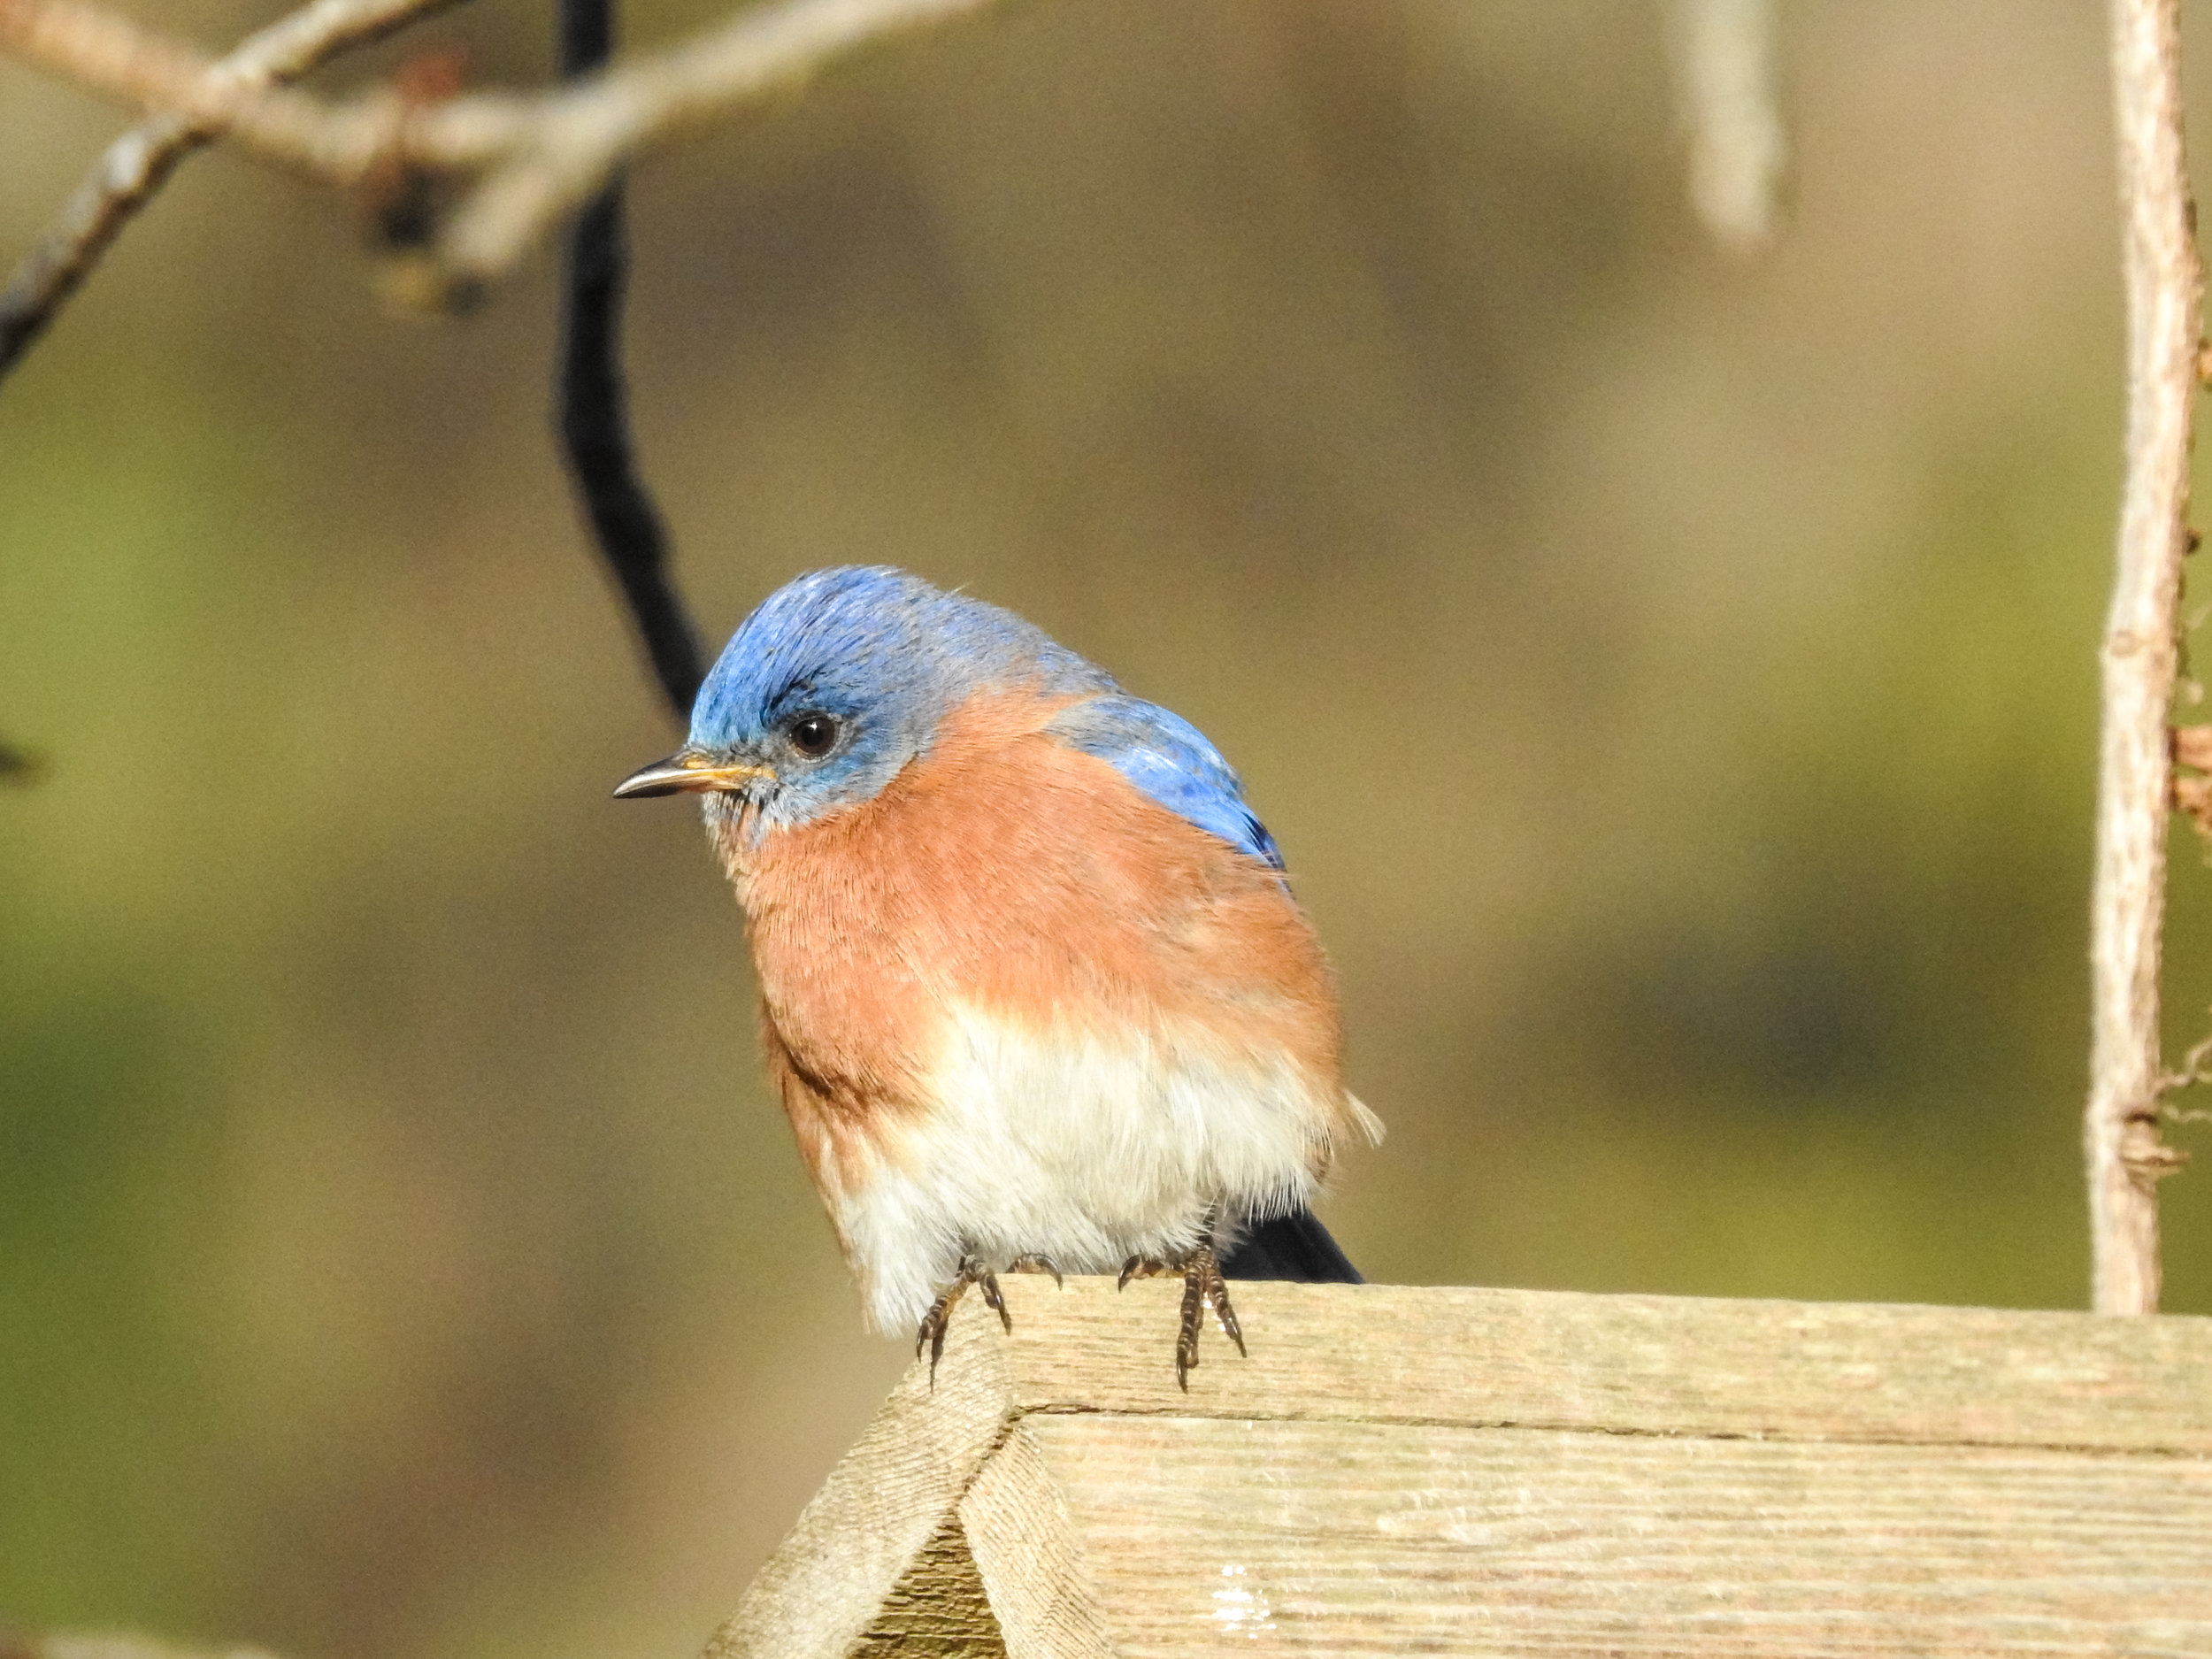 Eastern Bluebird, January 20, 2018